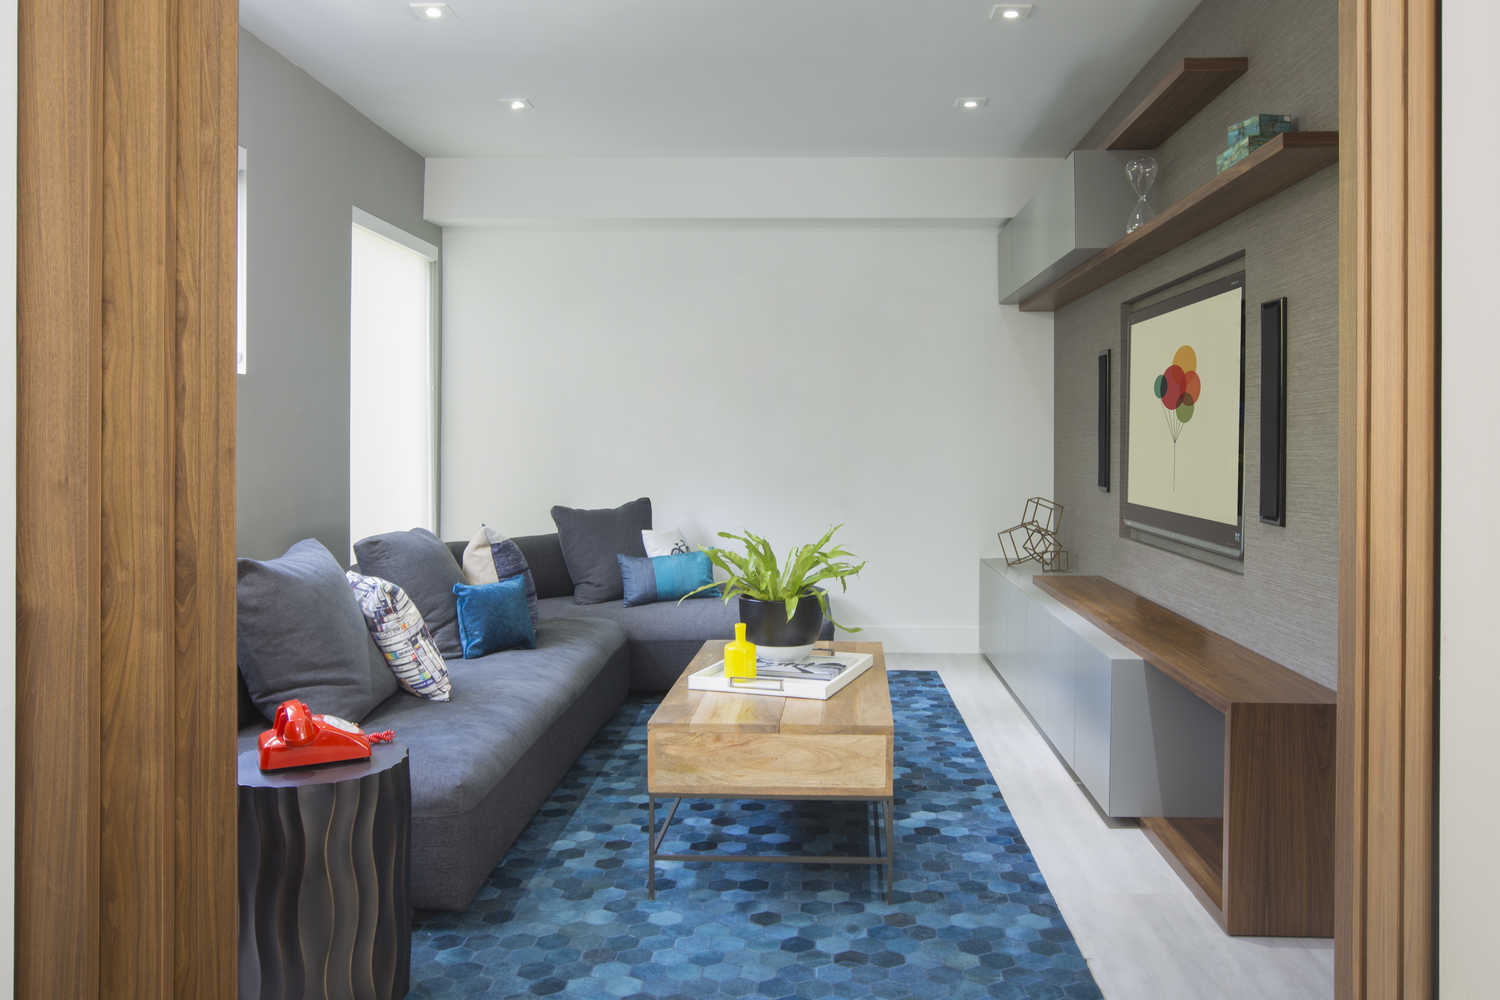 Decorating a room offers the chance to put your individual style on display and make a space unique. Media Room Ideas - Residential Interior Design from DKOR ...